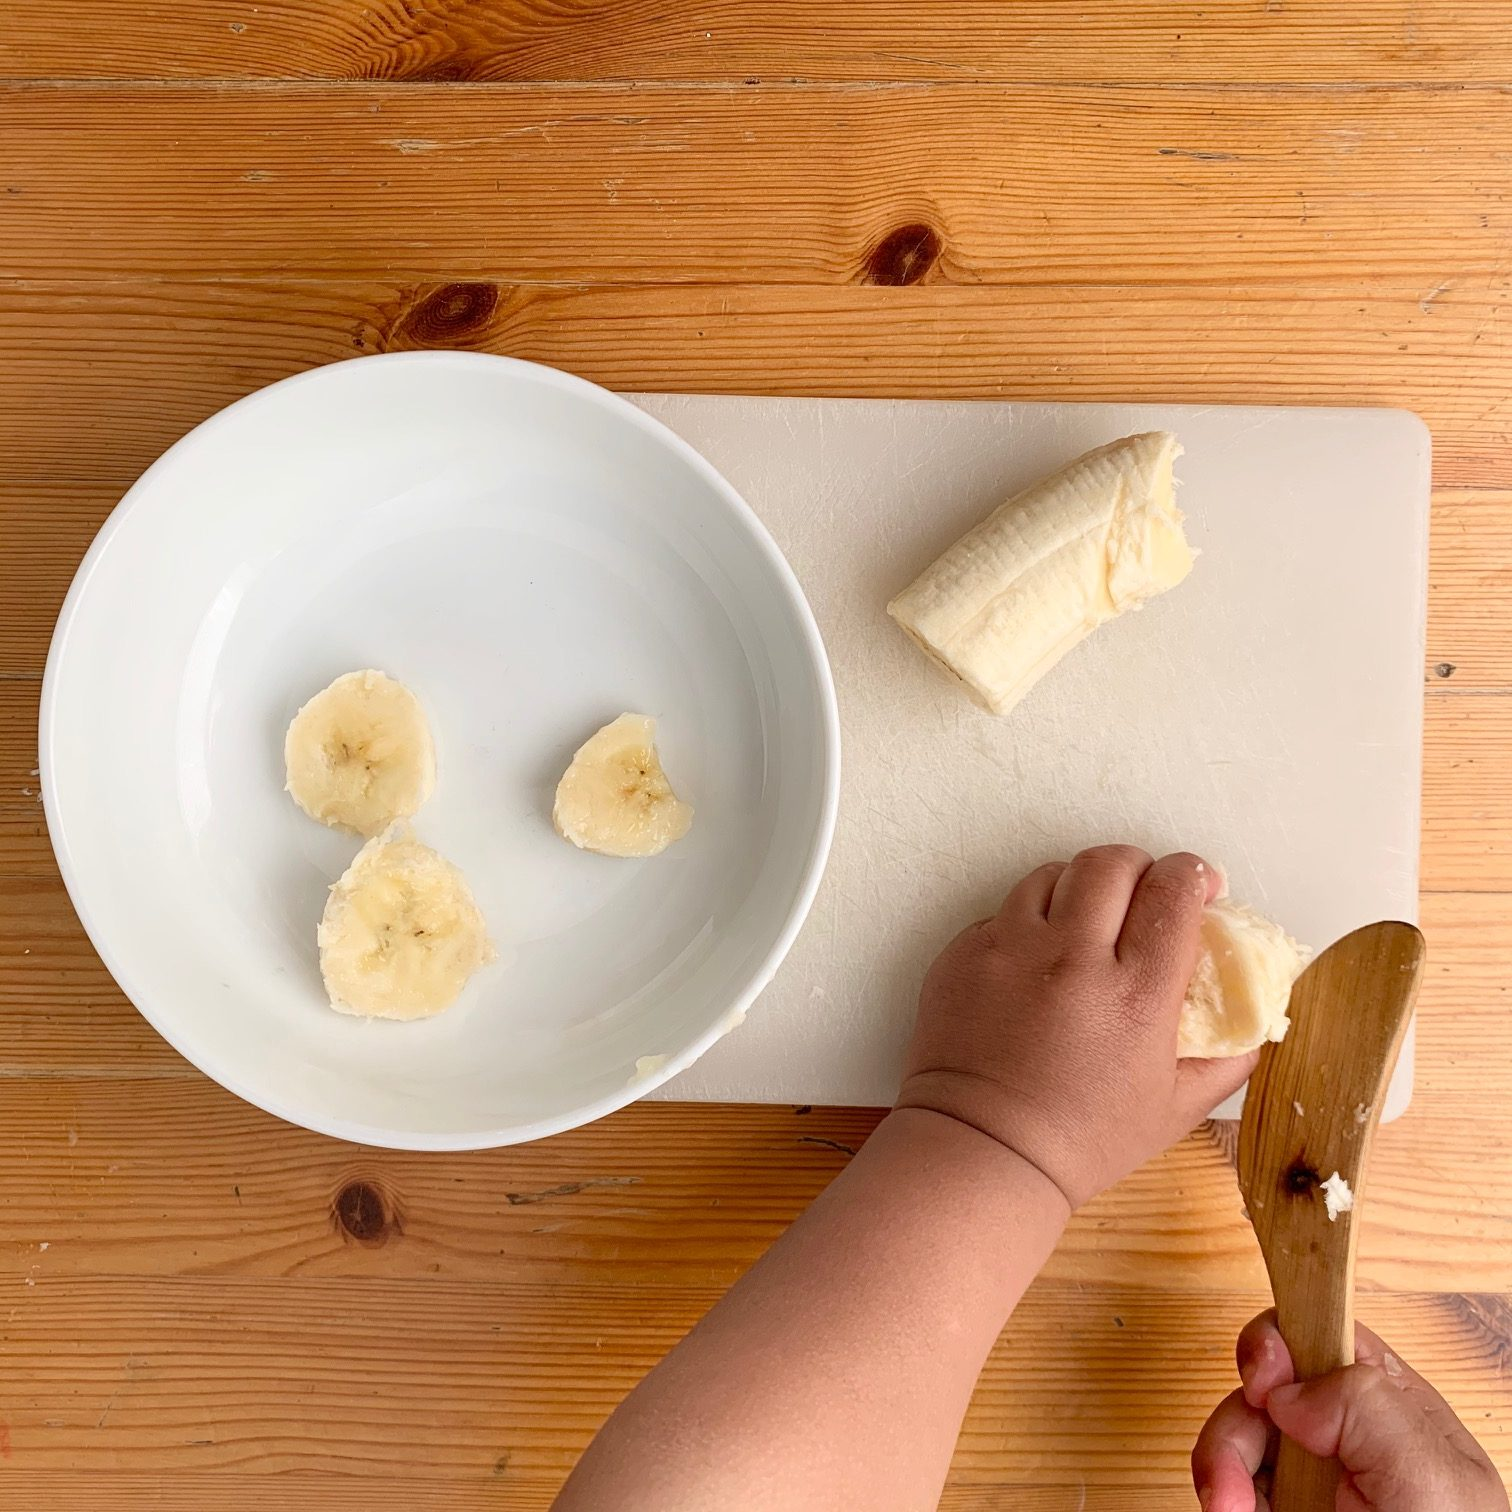 Simple Montessori activities for 2 year olds